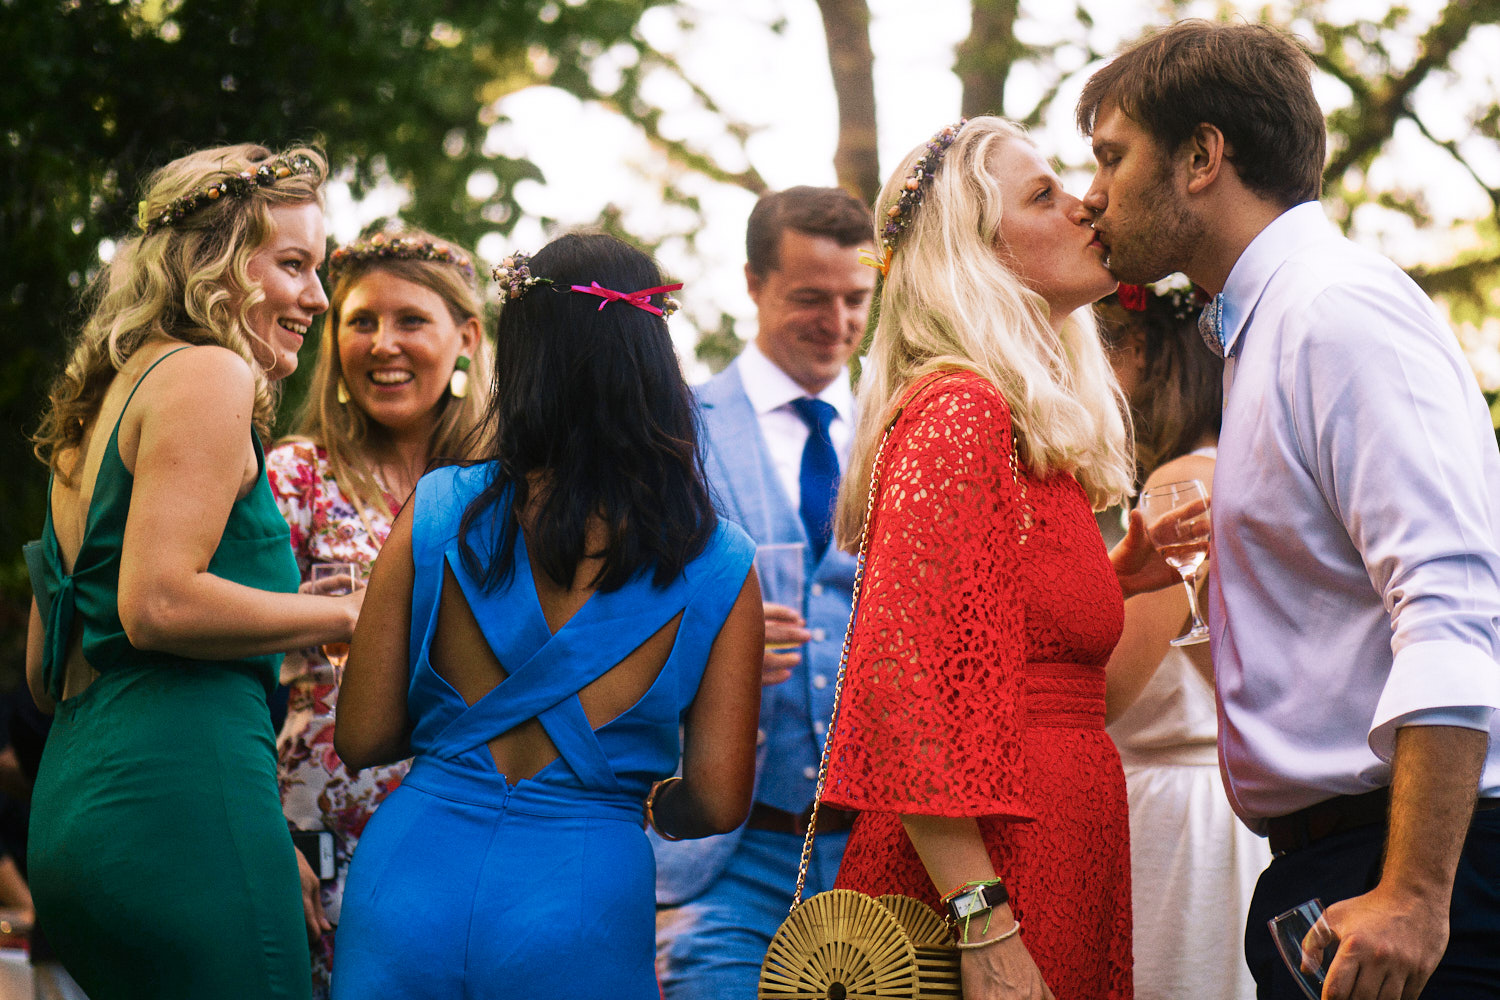 A couple kiss during an outdoor wedding reception in France